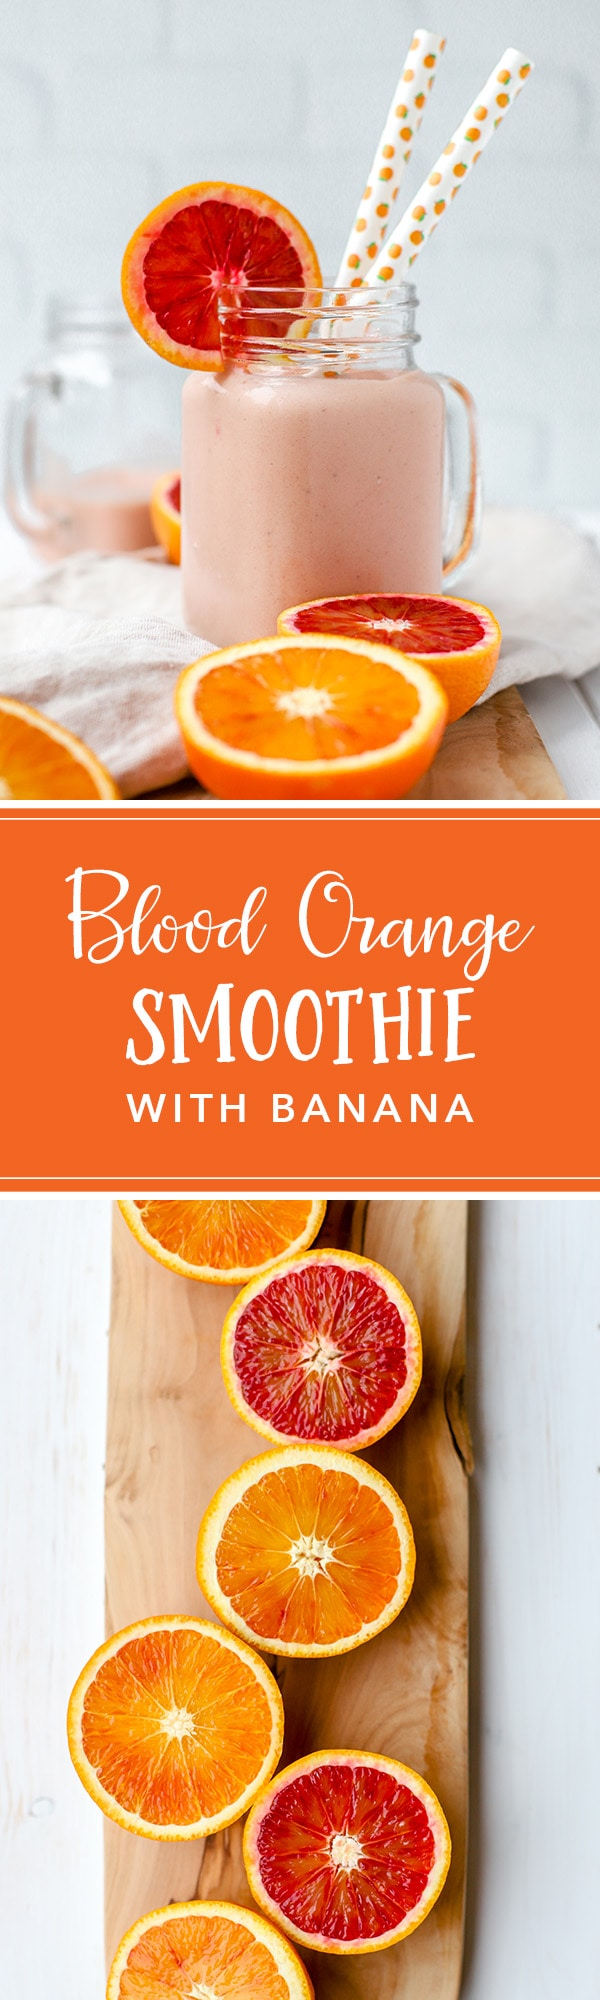 A healthy blood orange banana smoothie, cool, creamy, and perfect for taking full advantage of citrus season! #citrus #bloodorange #smoothie